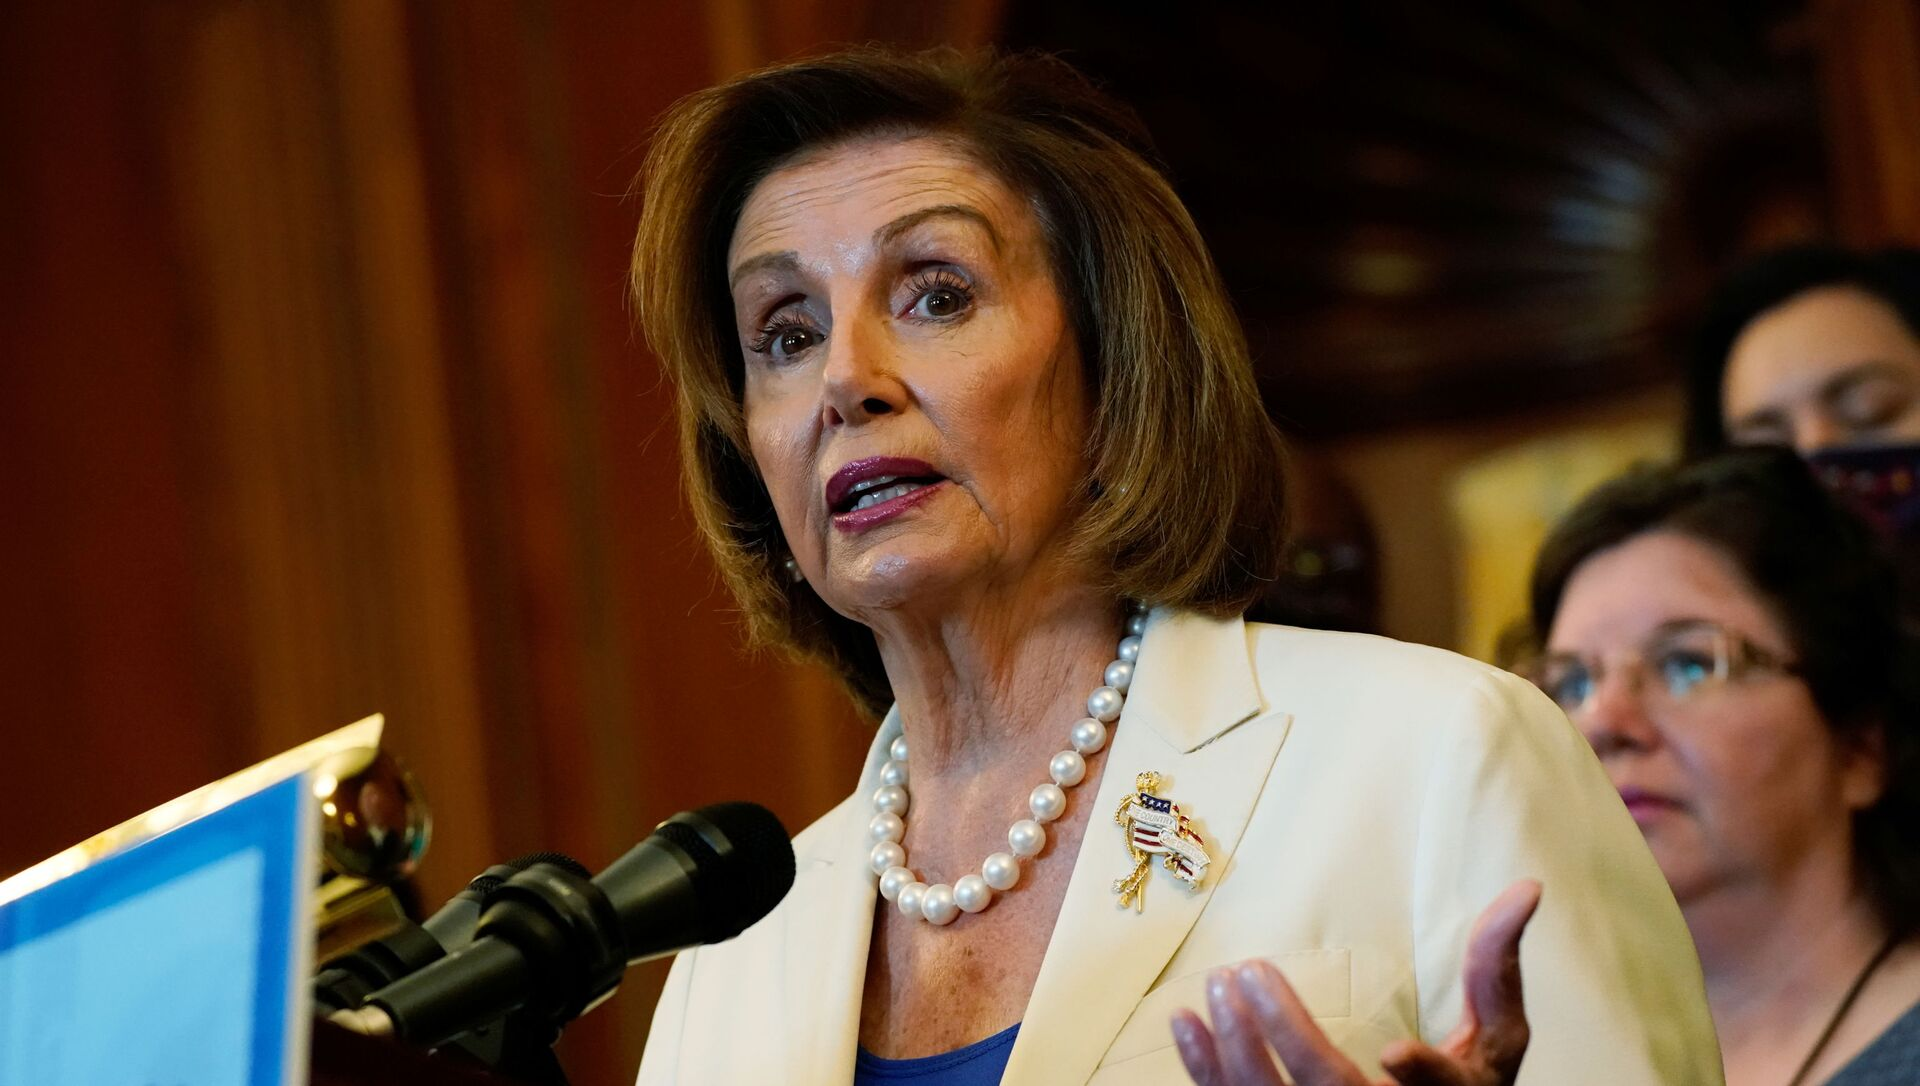 Speaker of the House Nancy Pelosi (D-CA) speaks during a news conference with mothers helped by Child Tax Credit payments at the U.S. Capitol in Washington, 20 July 2021. - Sputnik International, 1920, 26.07.2021